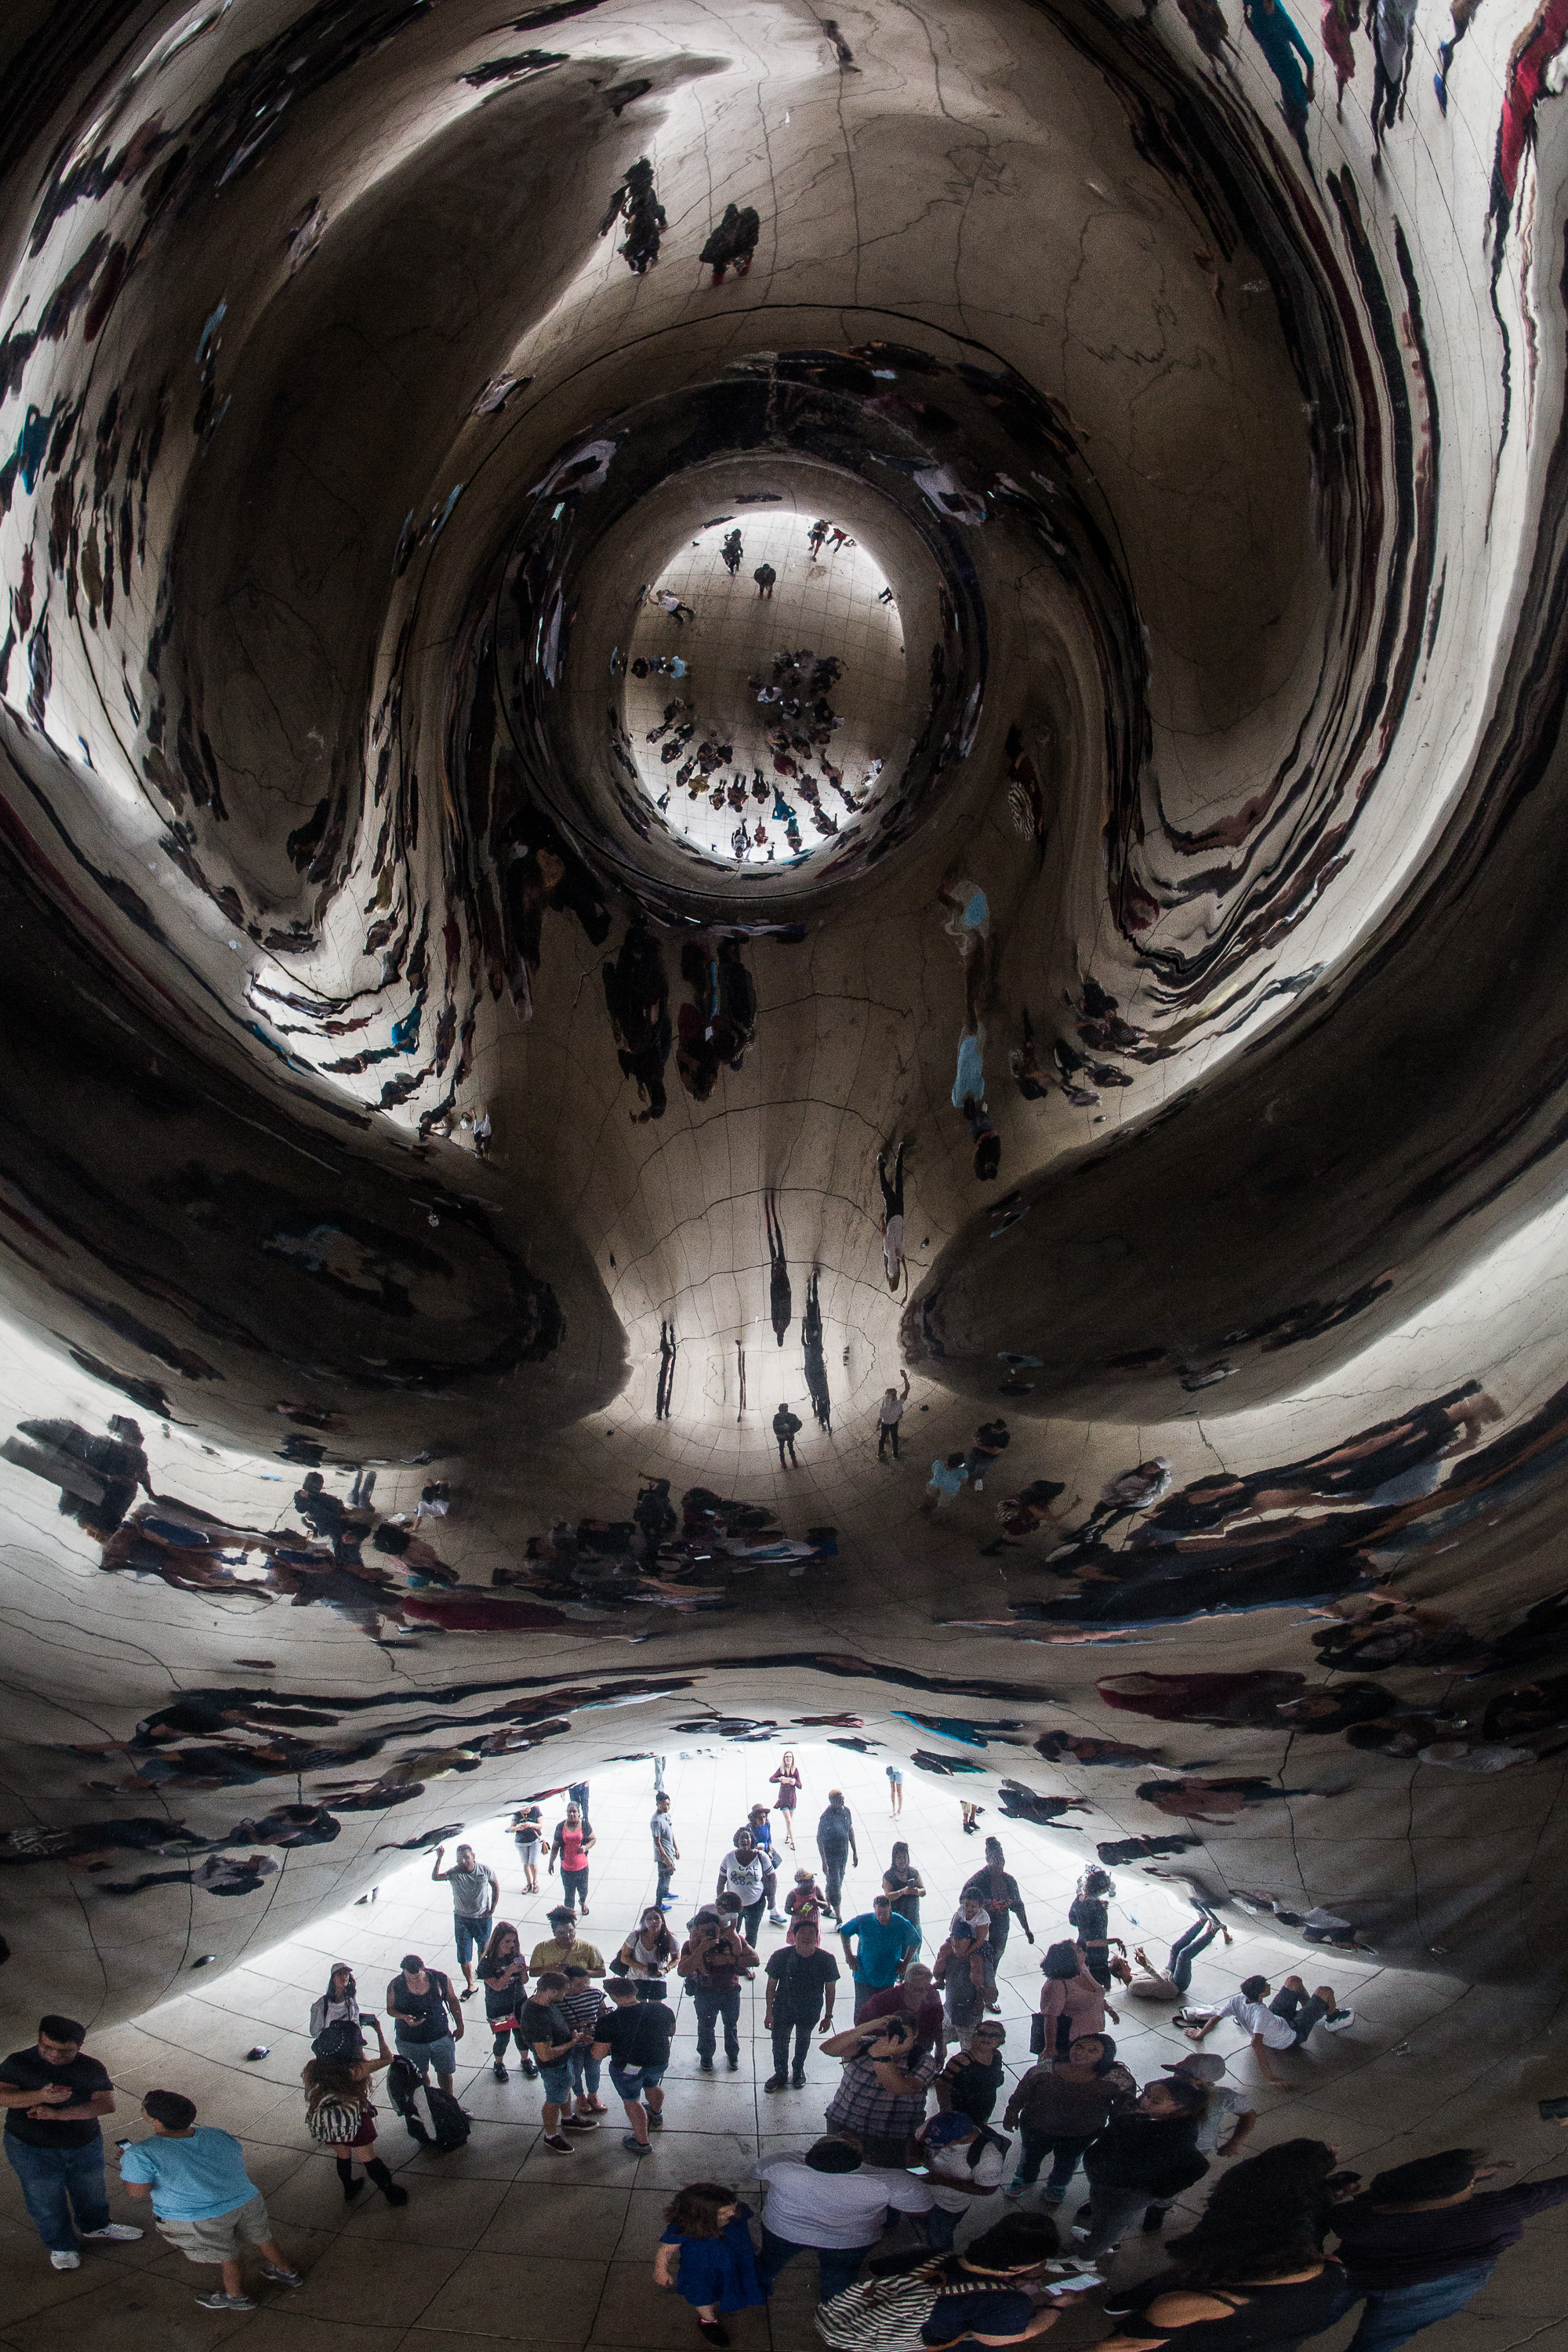 The view from under the 'bean'